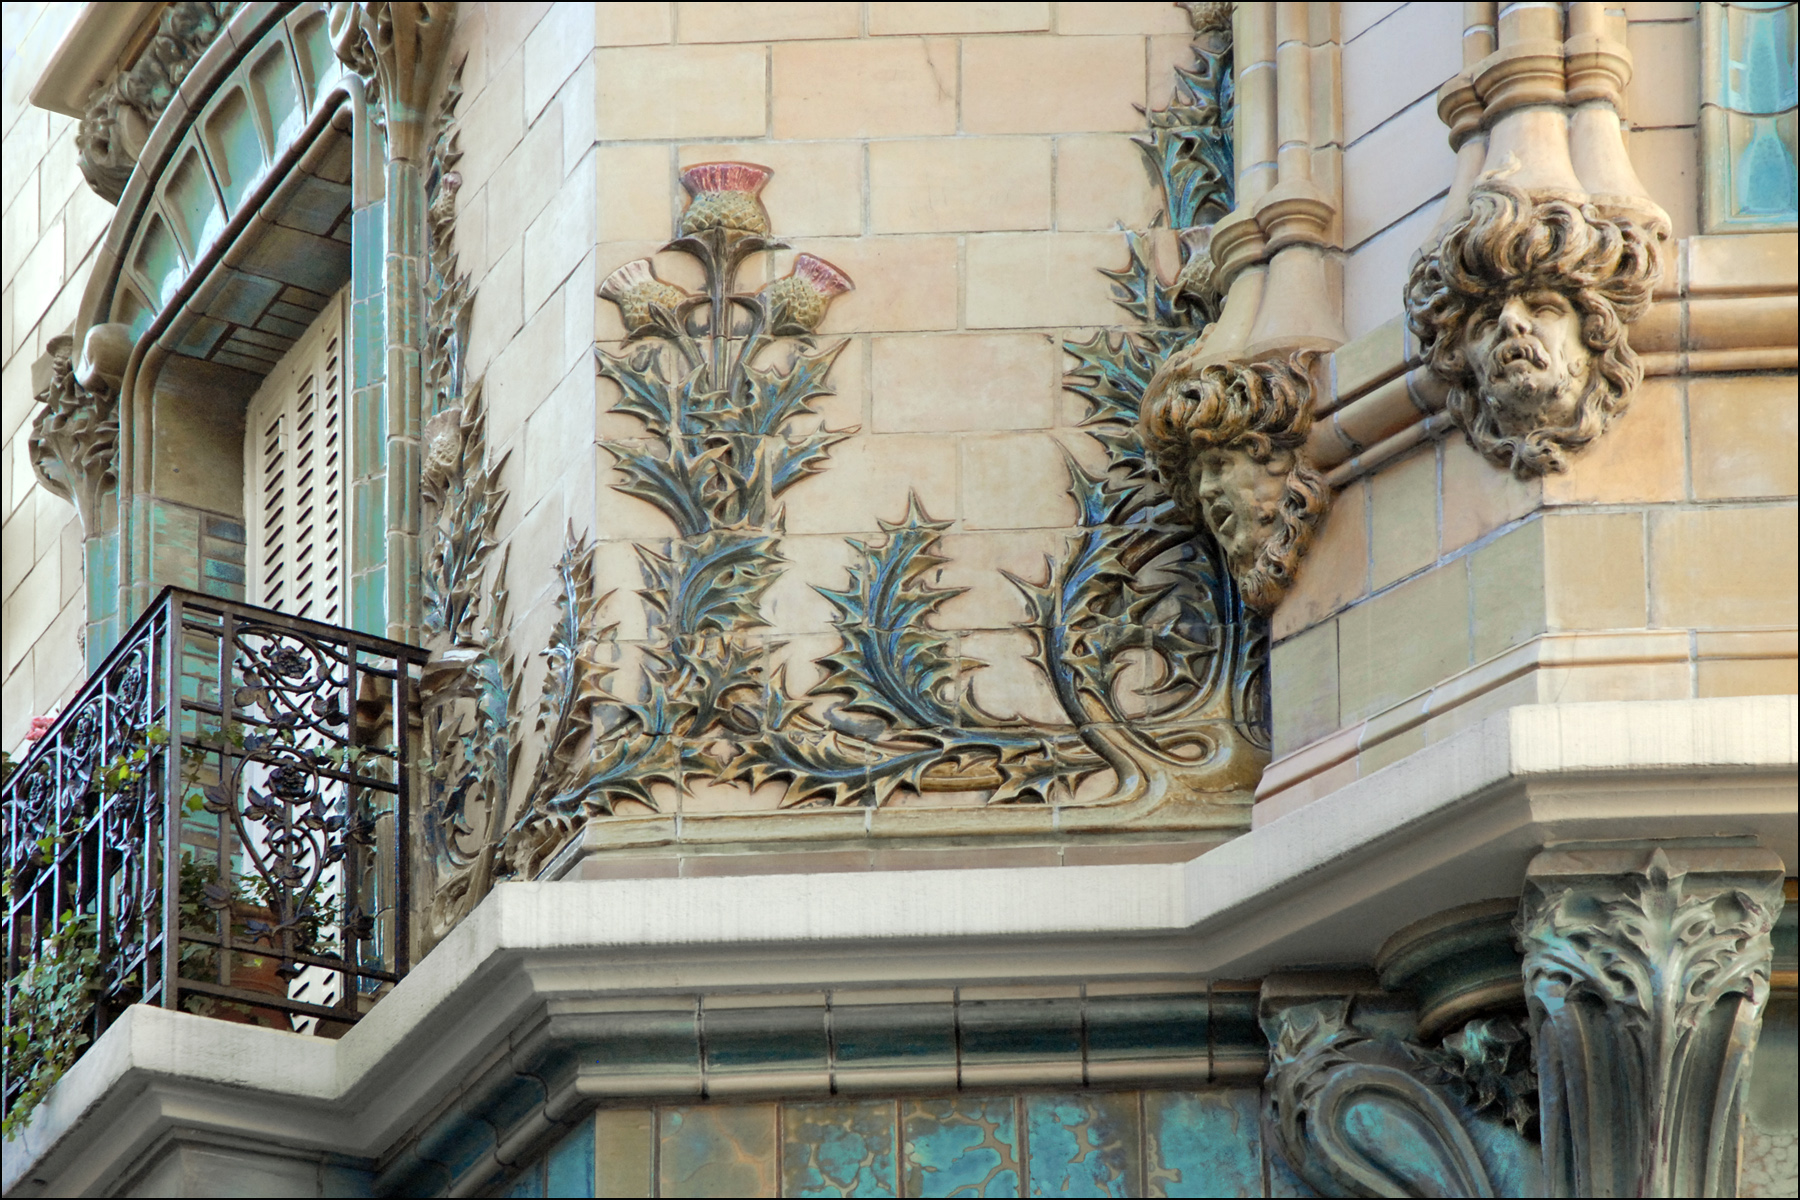 File el ments de d cor dun immeuble art nouveau paris - Art nouveau architecture de barcelone revisitee ...